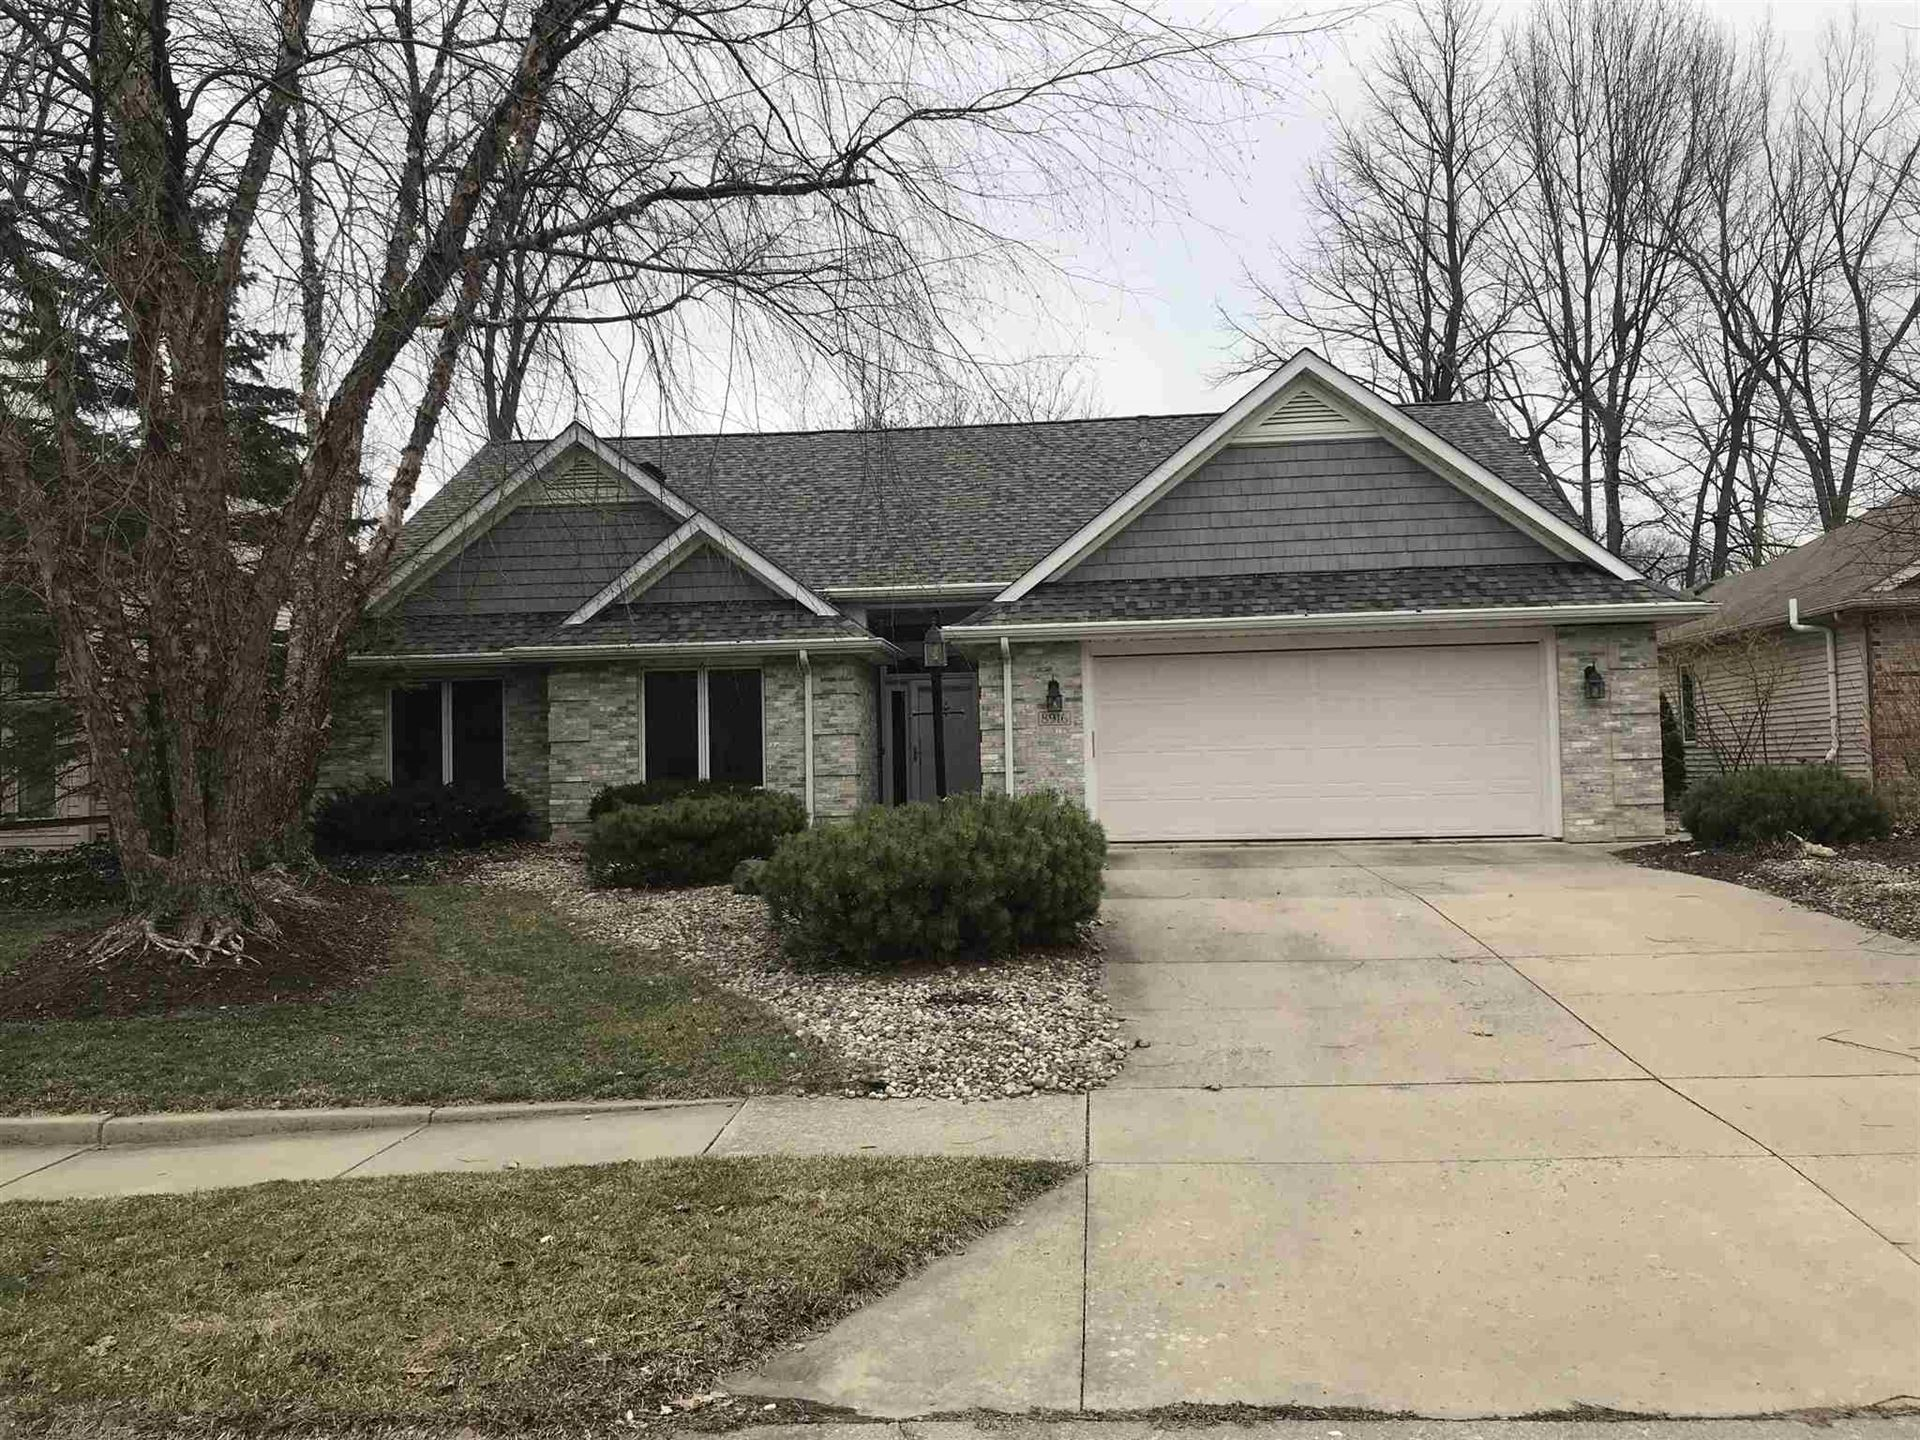 8916 SPRING FOREST Drive, Fort Wayne, IN 46804 - #: 202009583